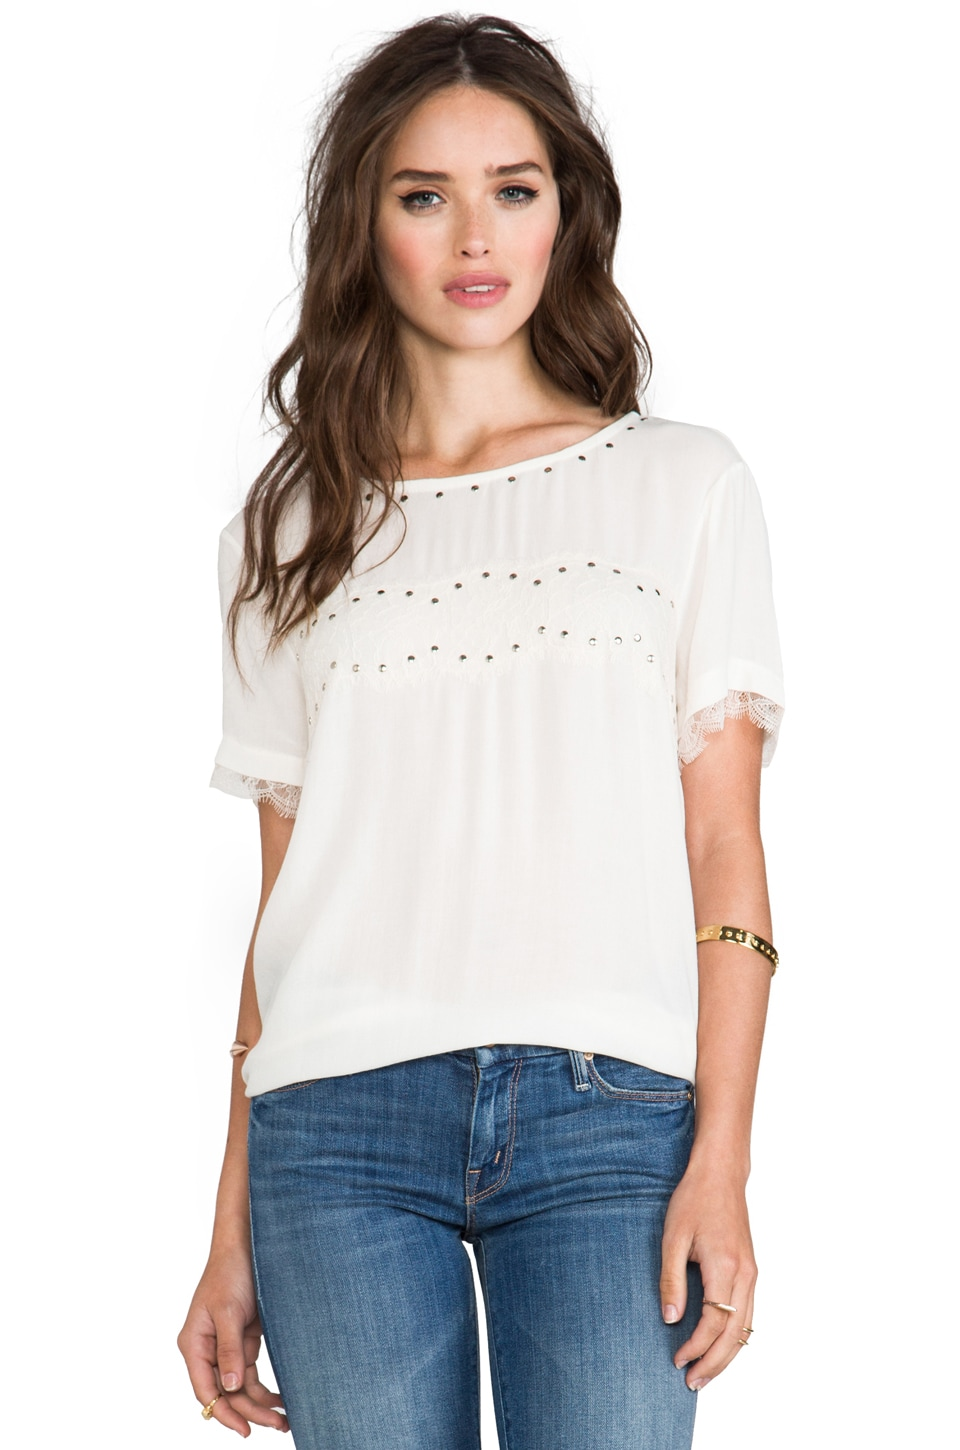 Ella Moss Chrissie Short Sleeve Tee in Natural